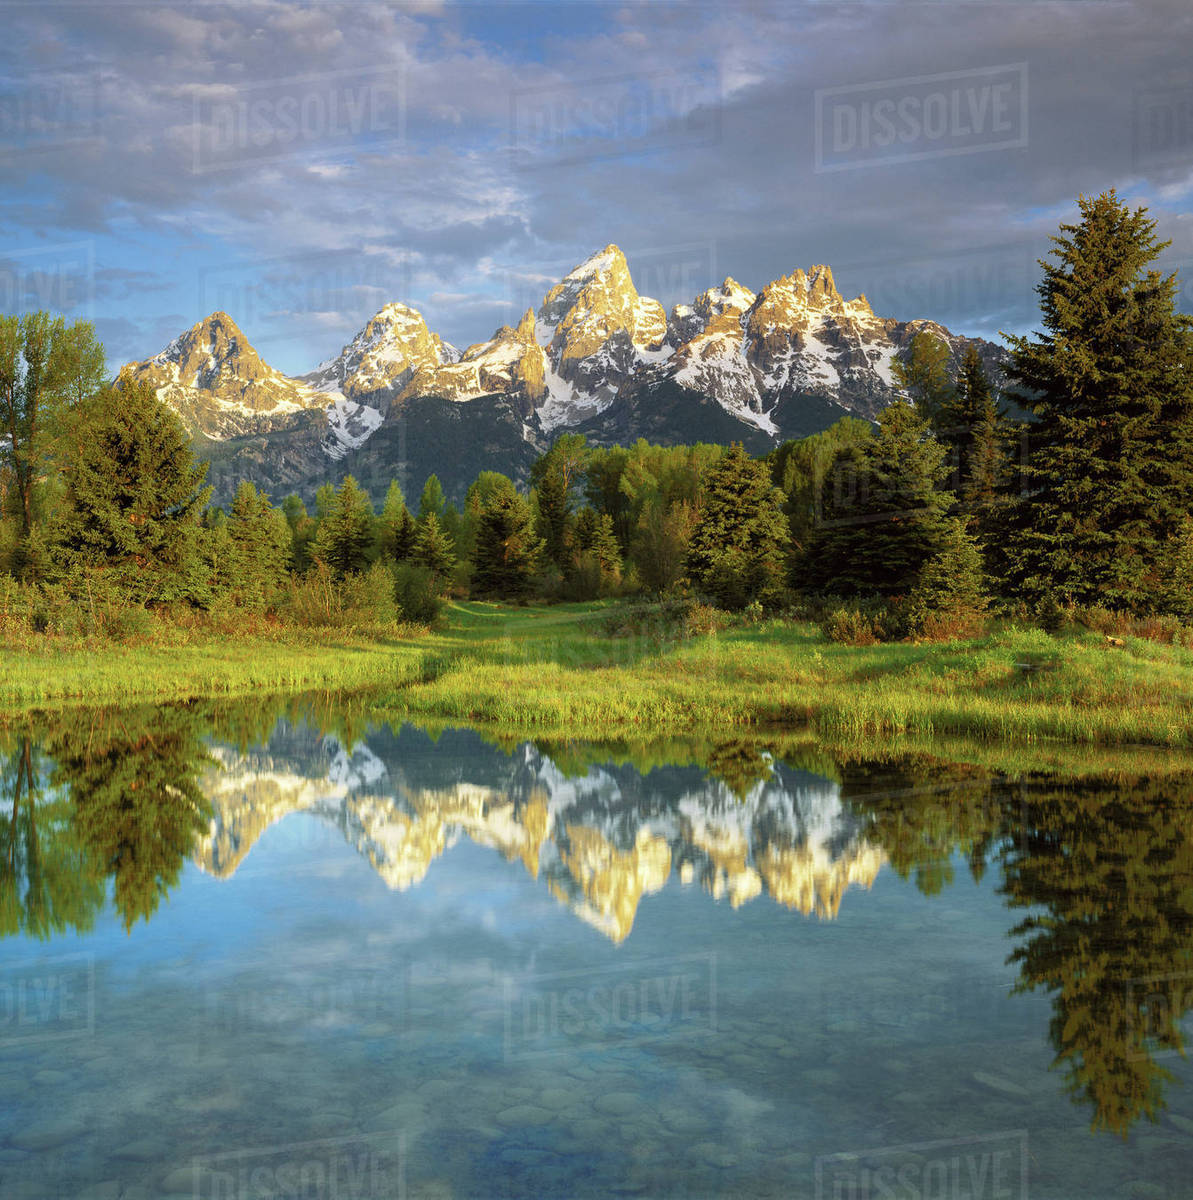 USA, Wyoming, Grand Teton National Park. Grand Teton Mountains reflecting in the Snake River. Rights-managed stock photo